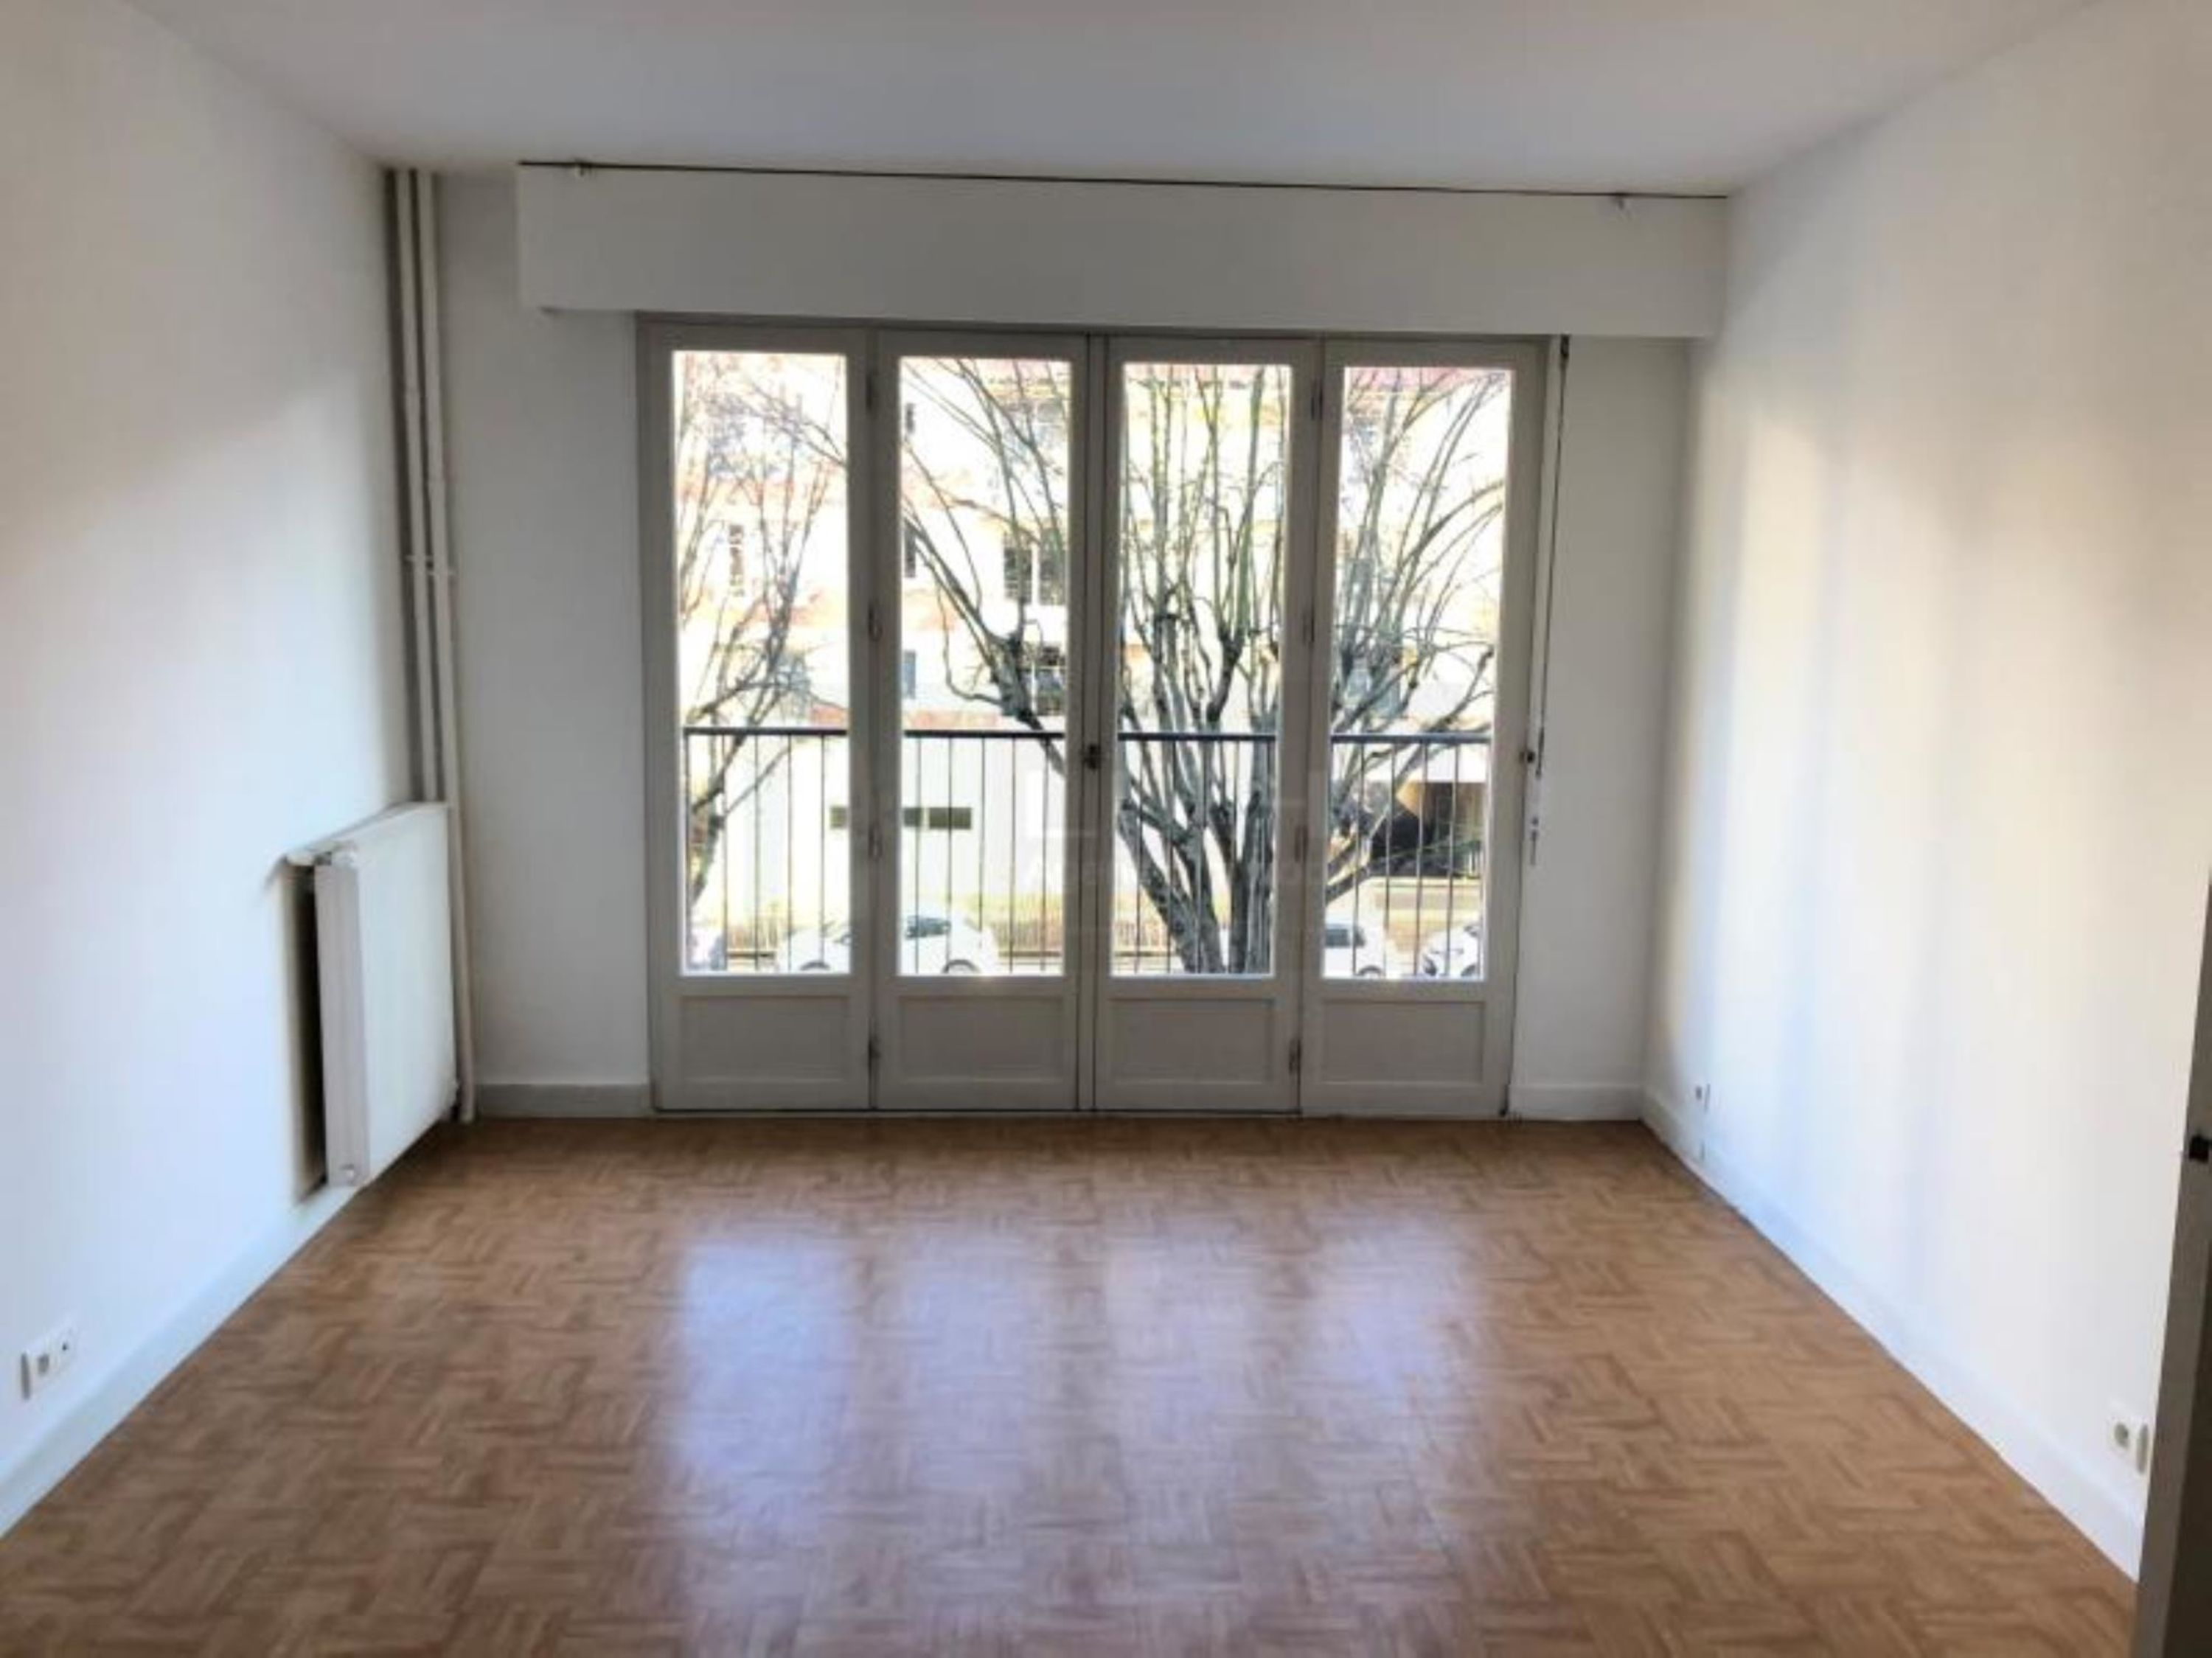 agence immobilière sevres 92 le chesnay 78 achat vente location appartement maison immobilier LMHT ANF GMFUCKQT